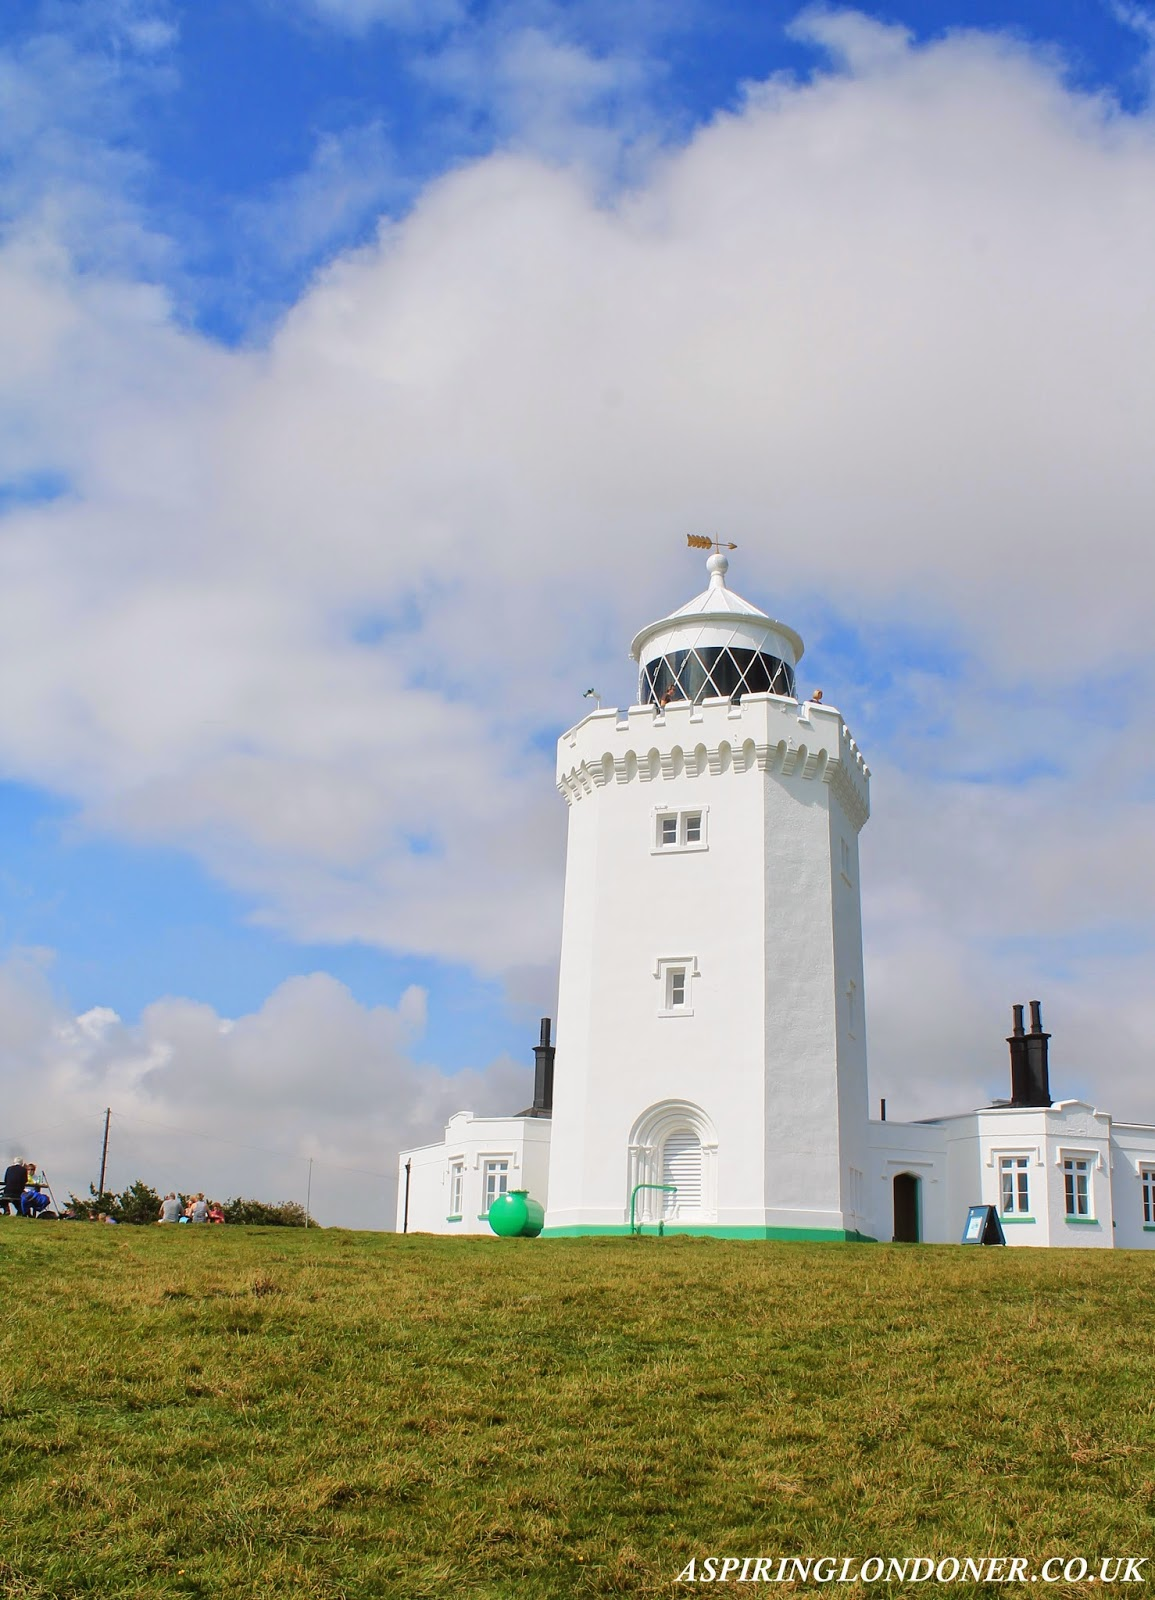 South Foreland Lighthouse, White Cliffs of Dover, Kent - Aspiring Londoner